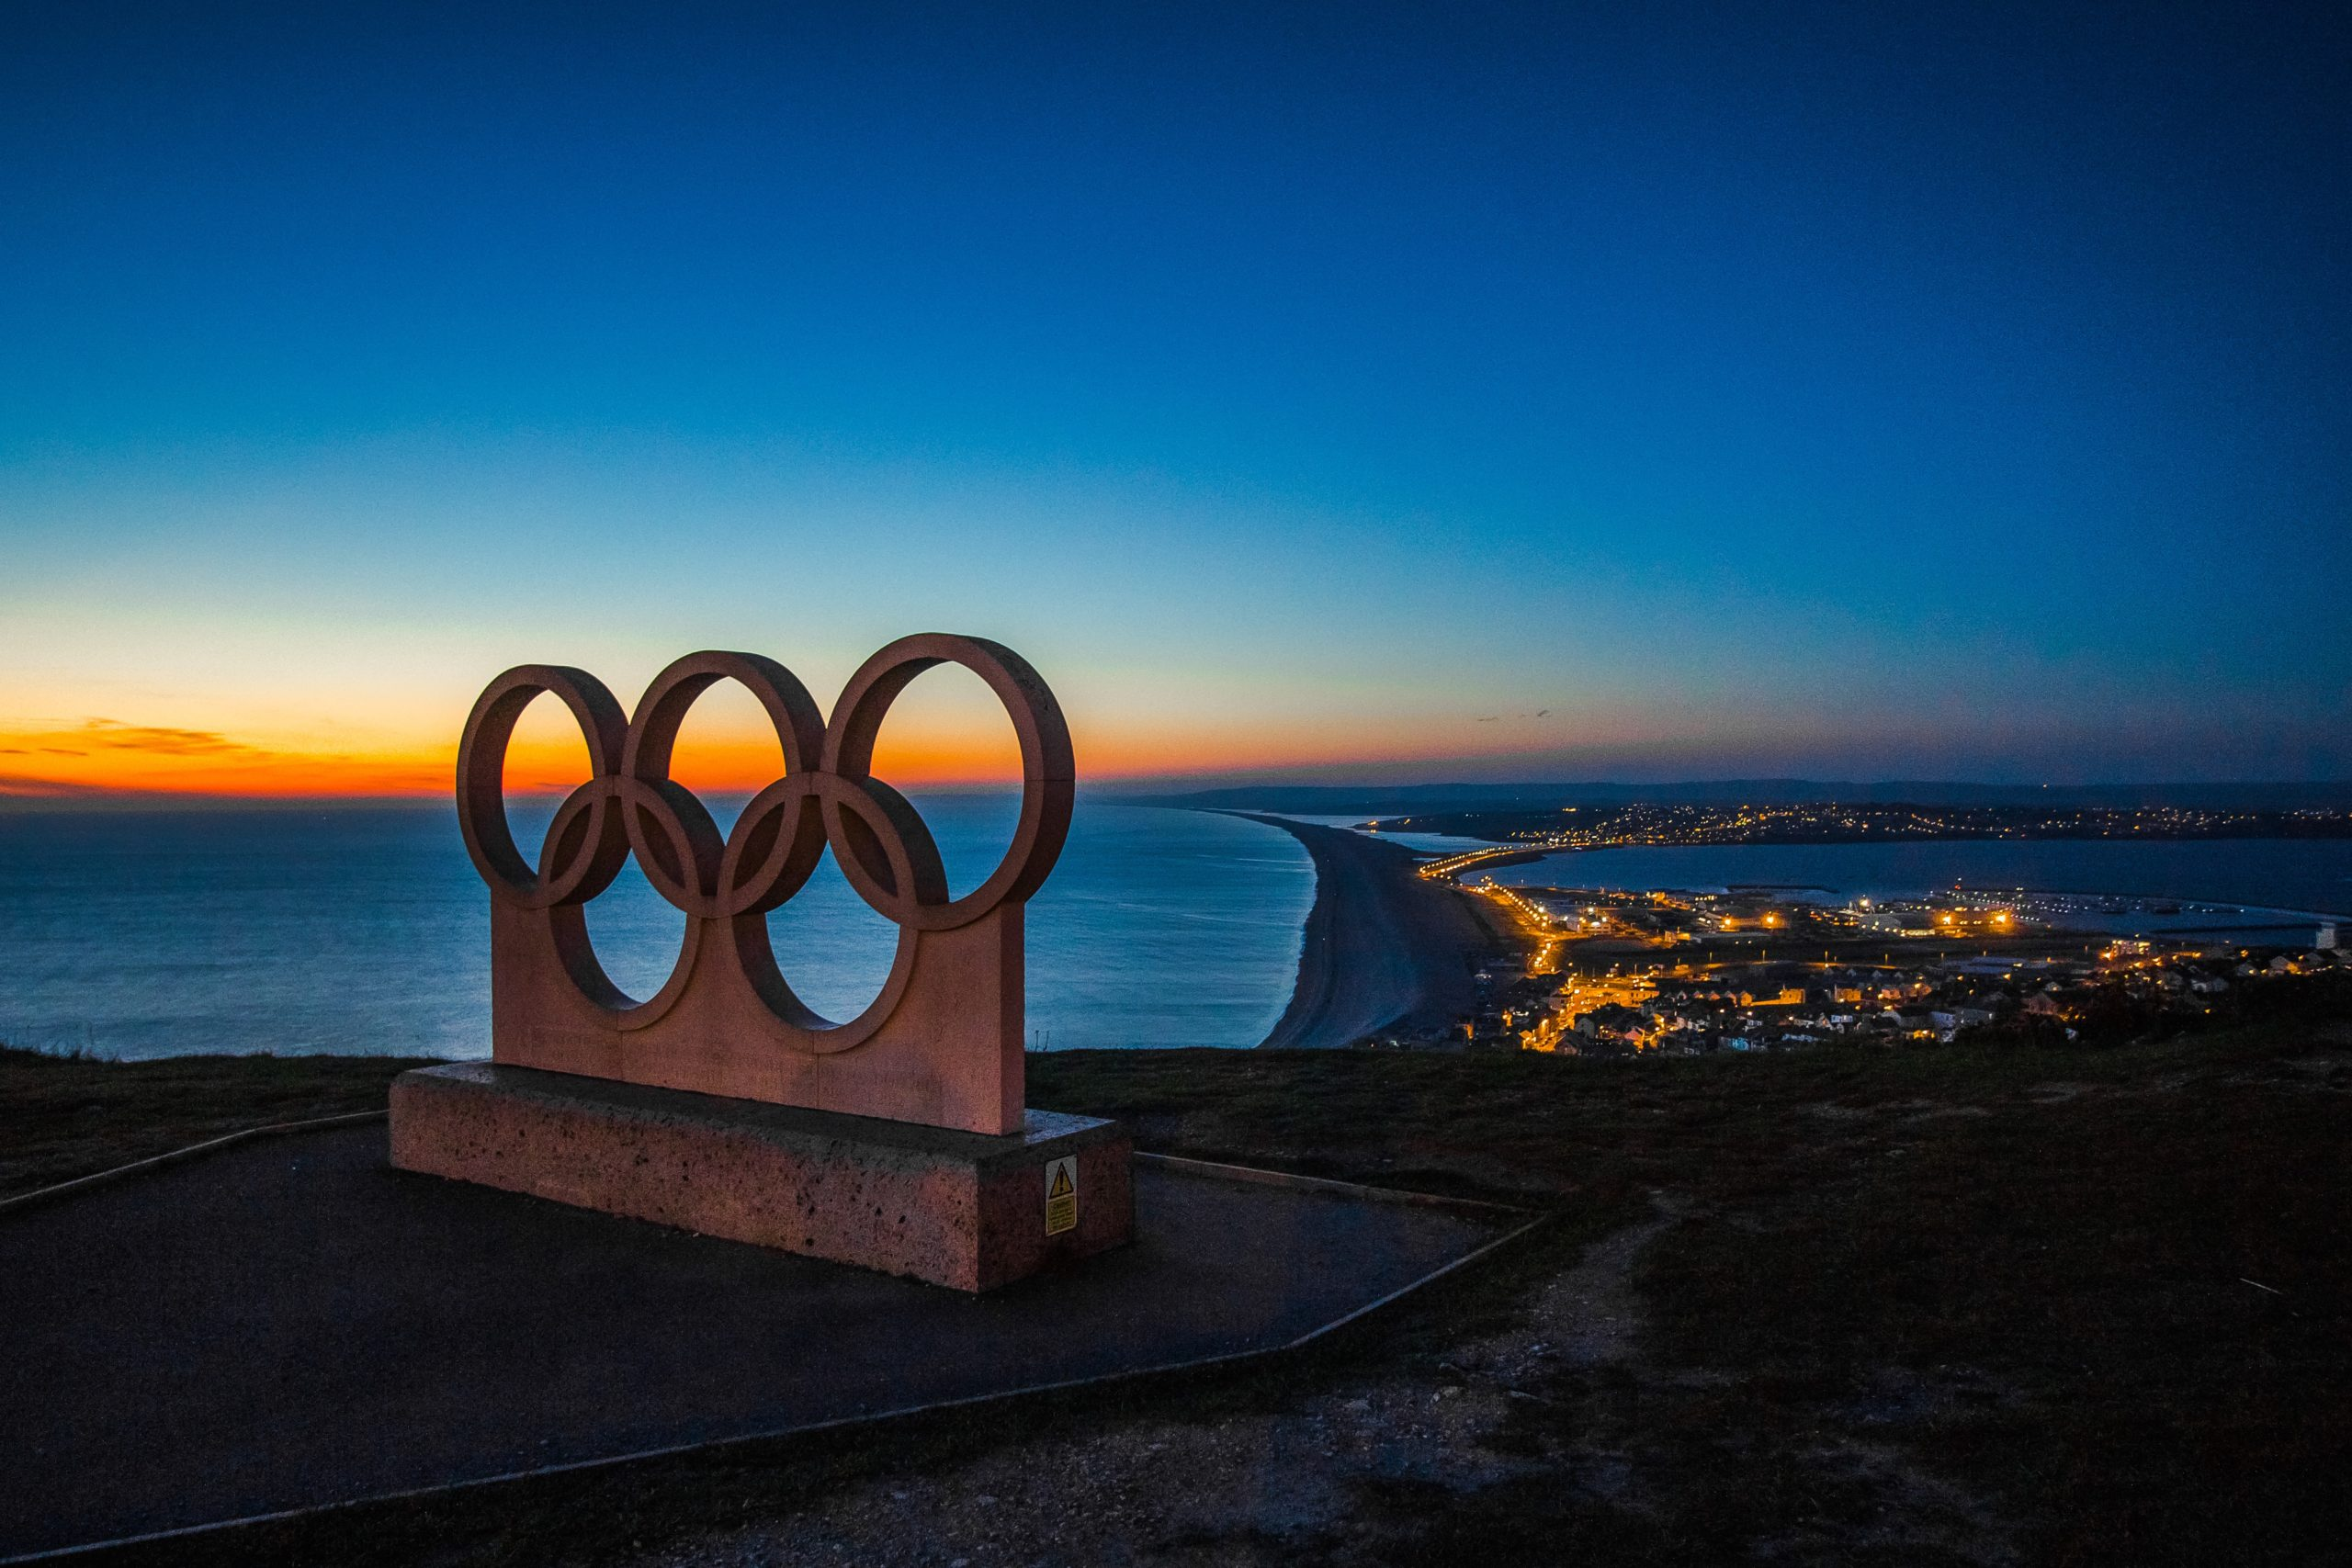 'The Olympic Rings' at Top O' The Hill, Portland, Dorset